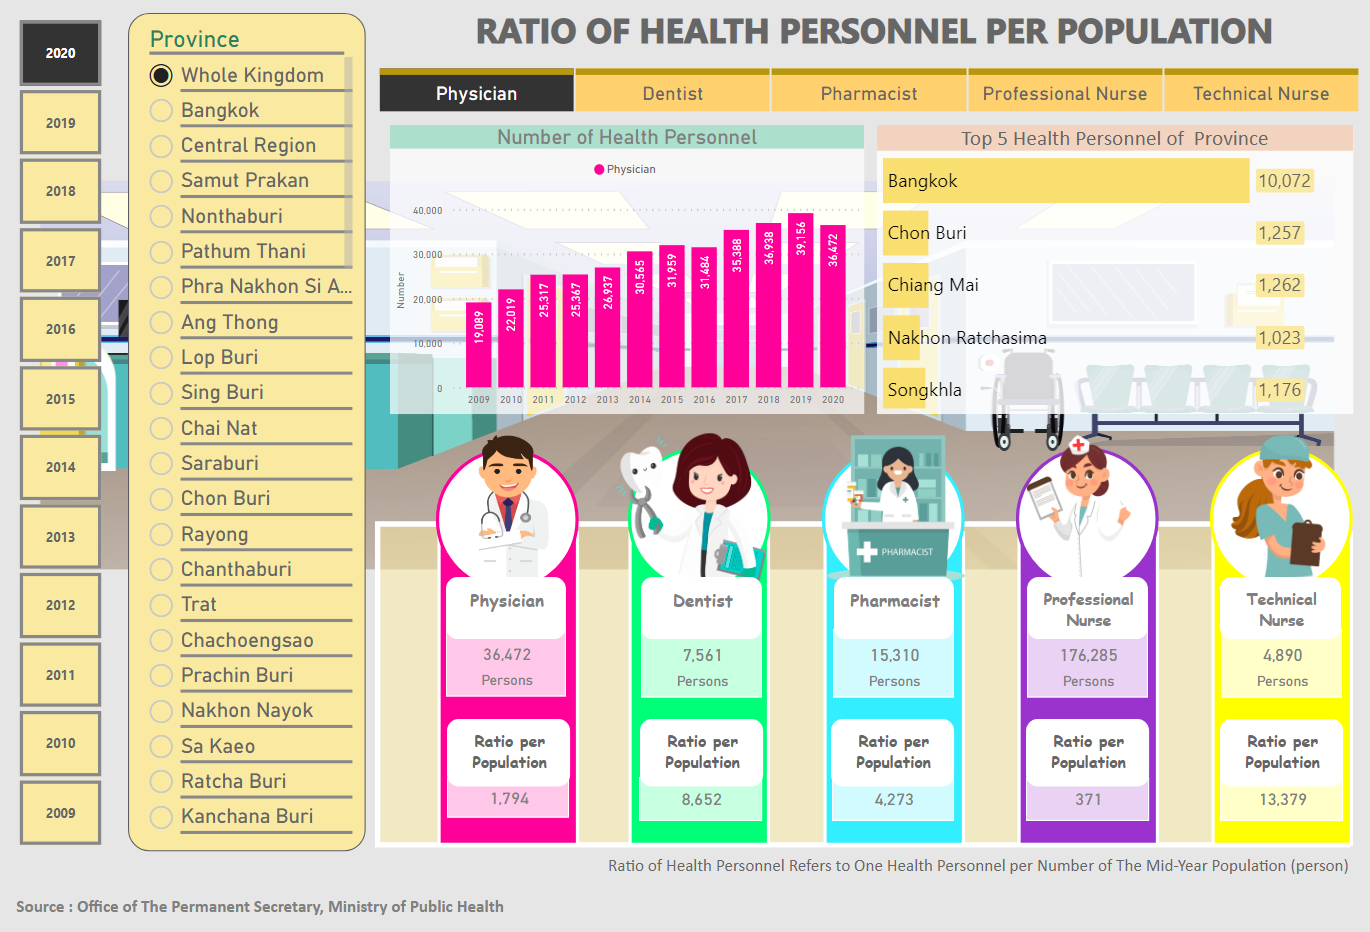 RATIO OF HEALTH PERSONNEL PER POPULATION